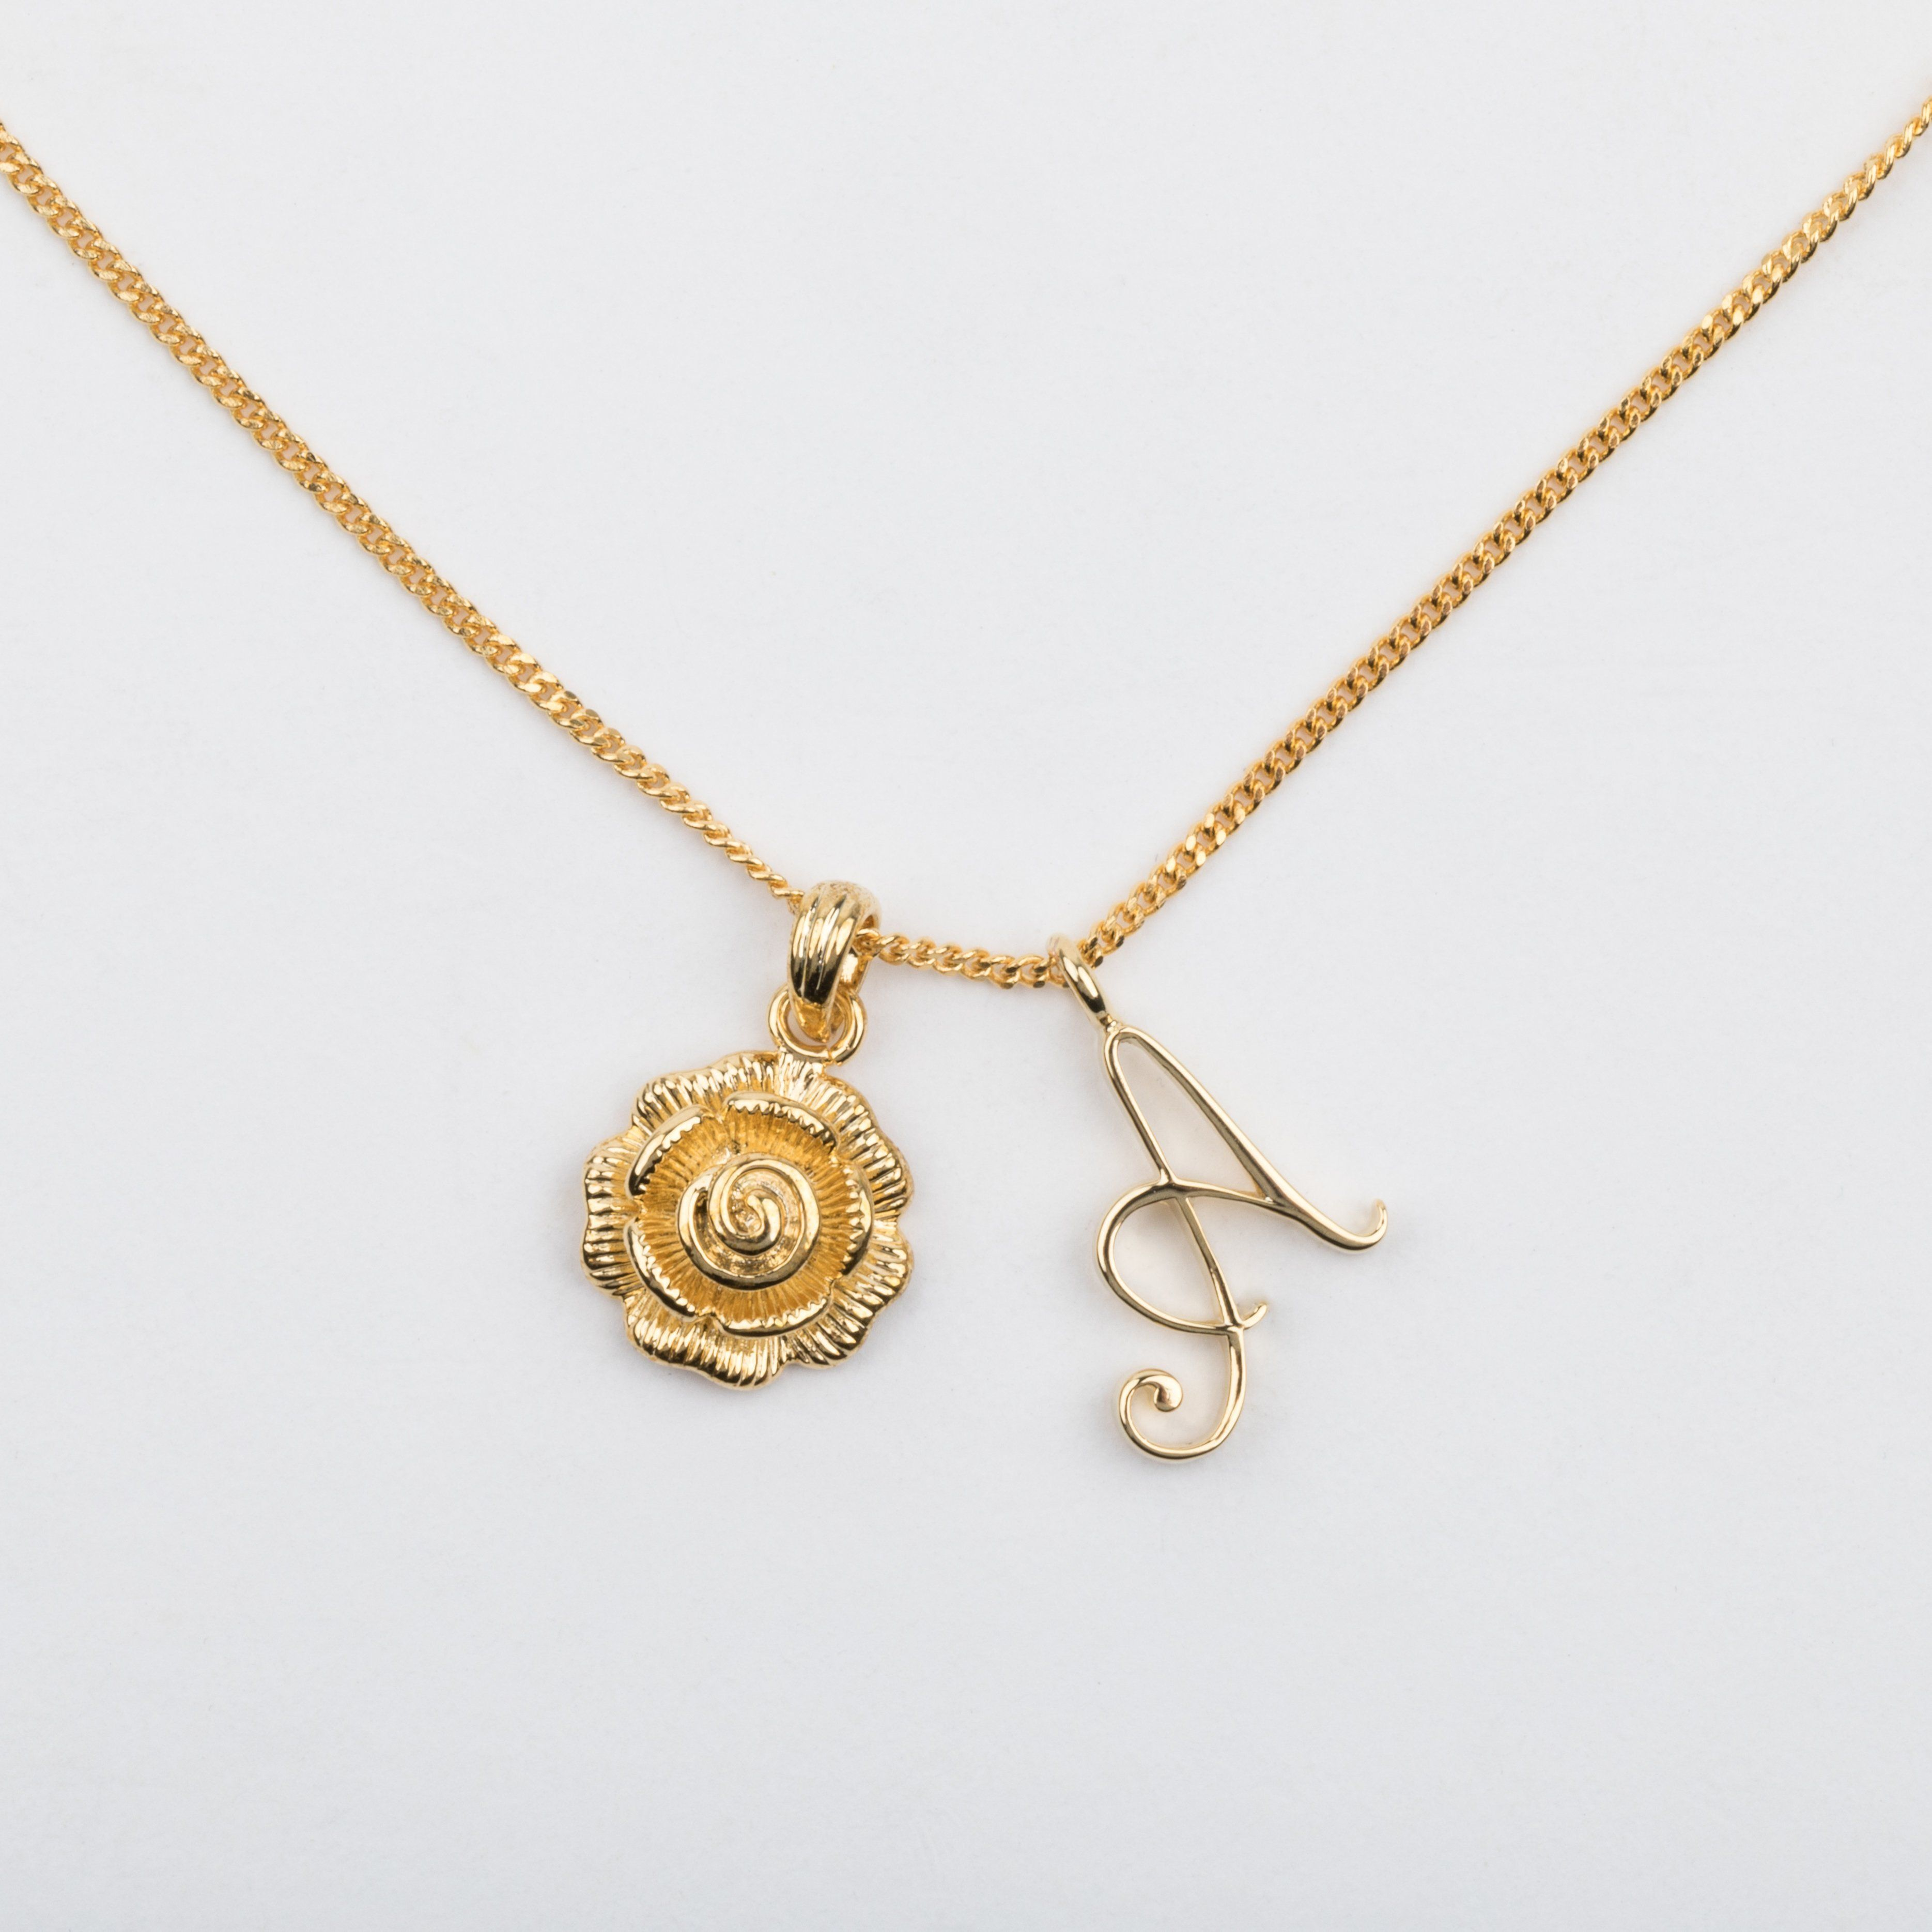 A initial necklace with rose pendant in my style pinterest